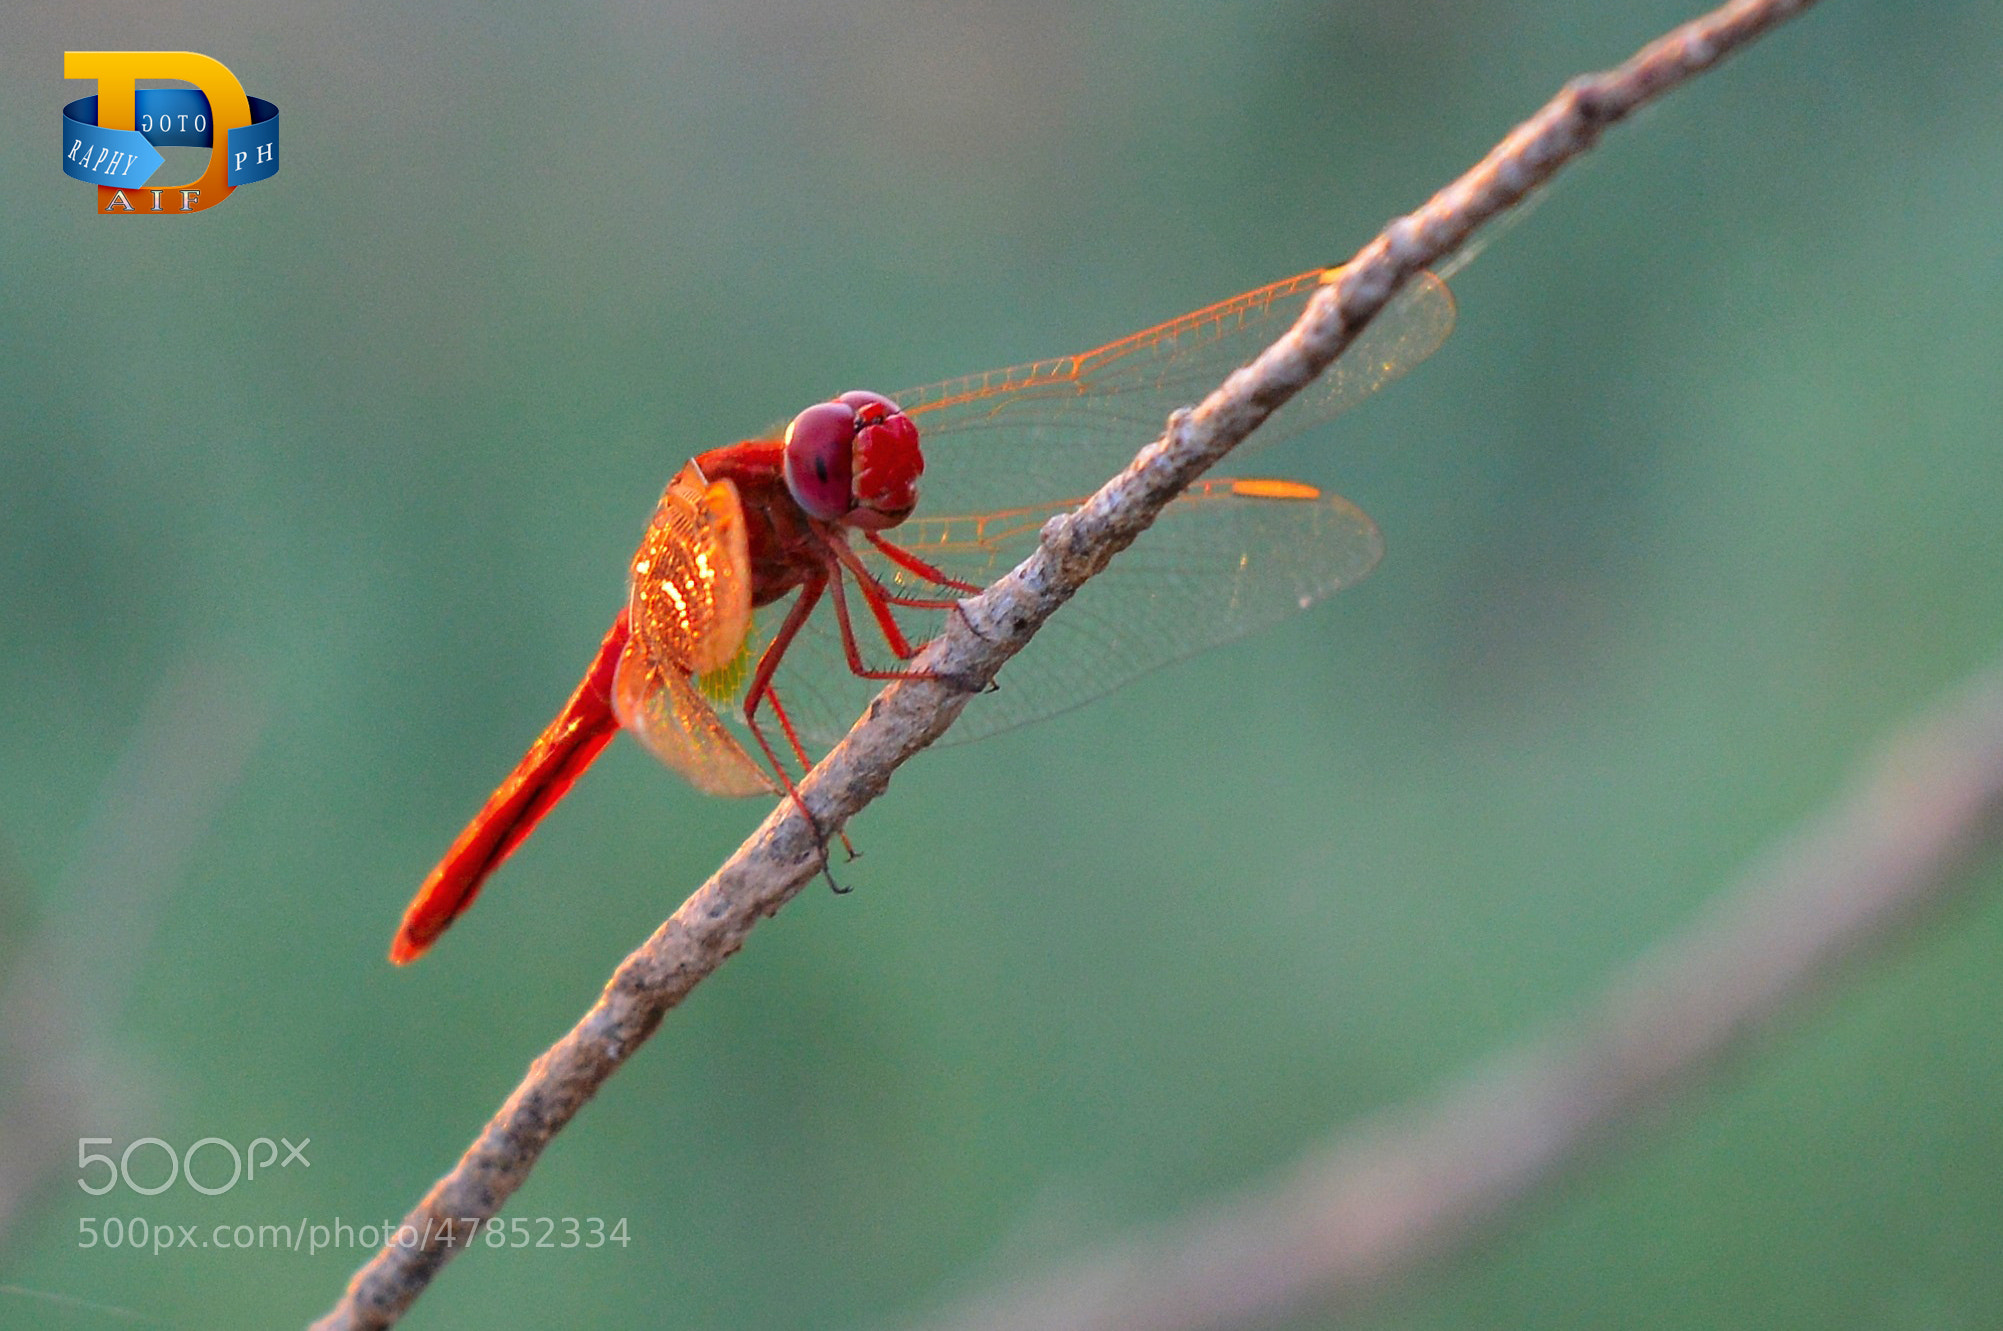 Photograph dragonfly by Daifallah Mansour on 500px